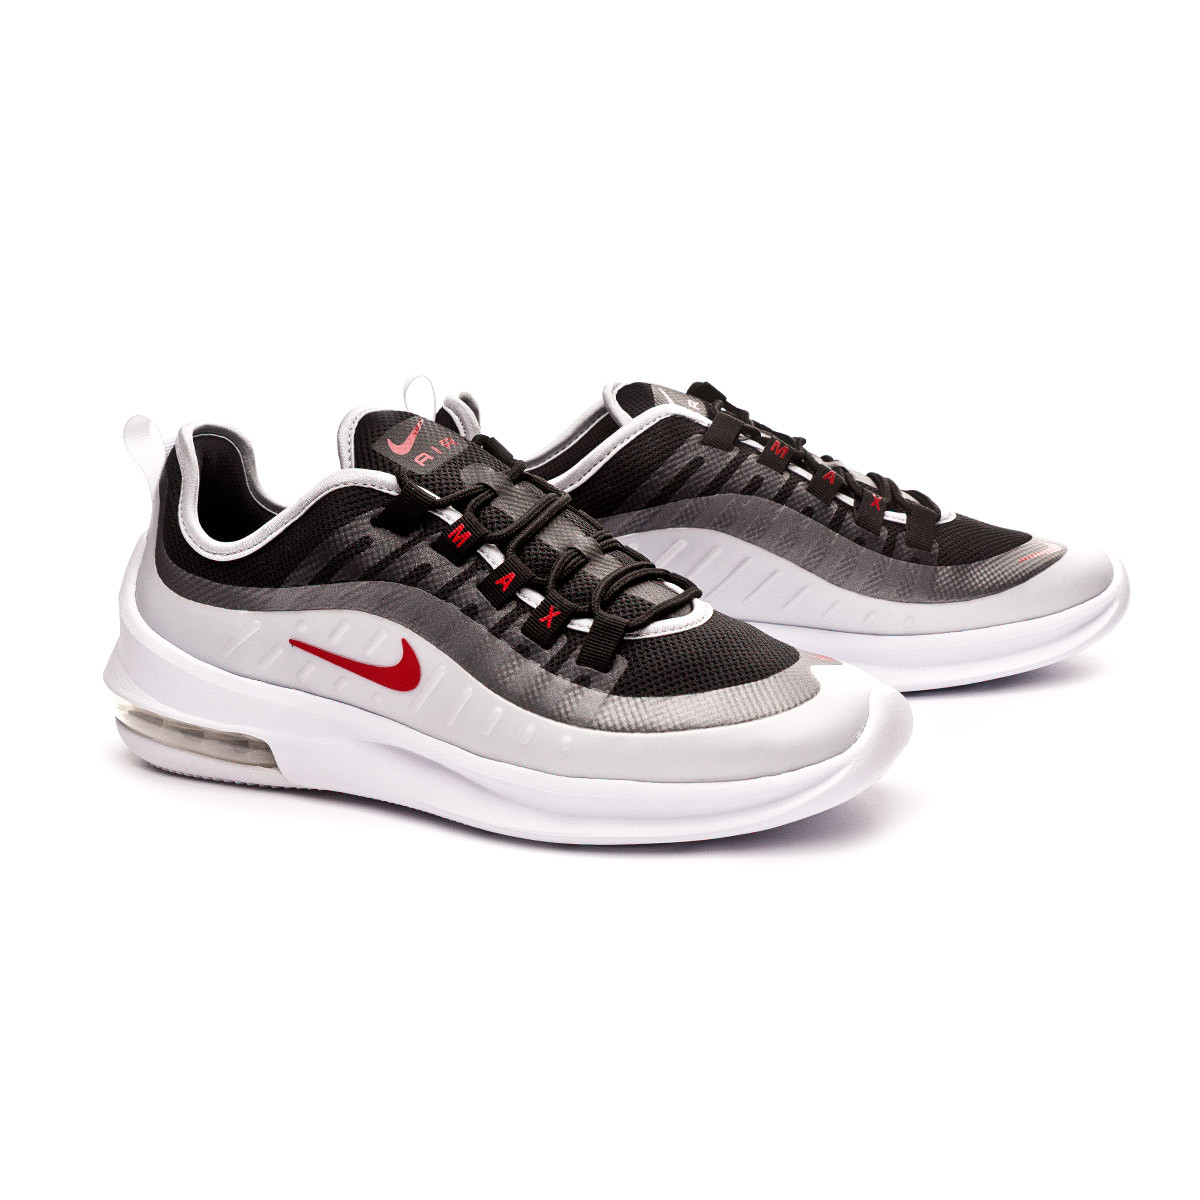 428c929042d Tenis Nike Air Max Axis Black-Sport red-Metallic platinum-White - Tienda de  fútbol Fútbol Emotion